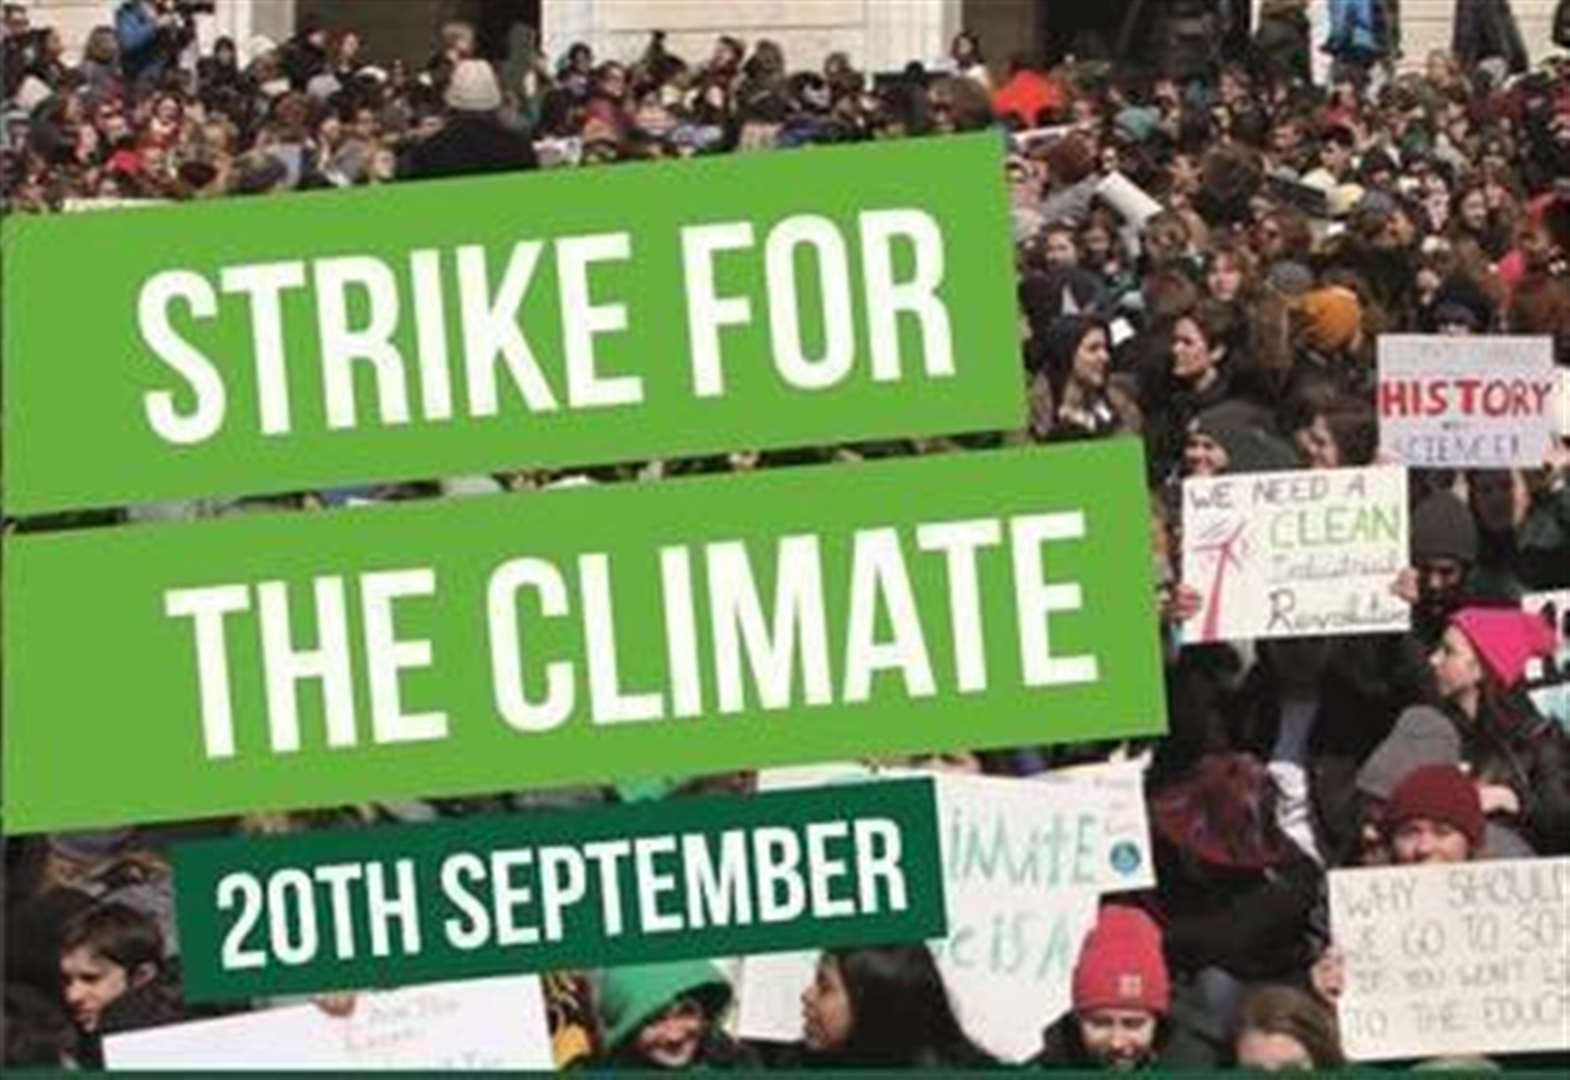 Day of action for climate change to take over town centre